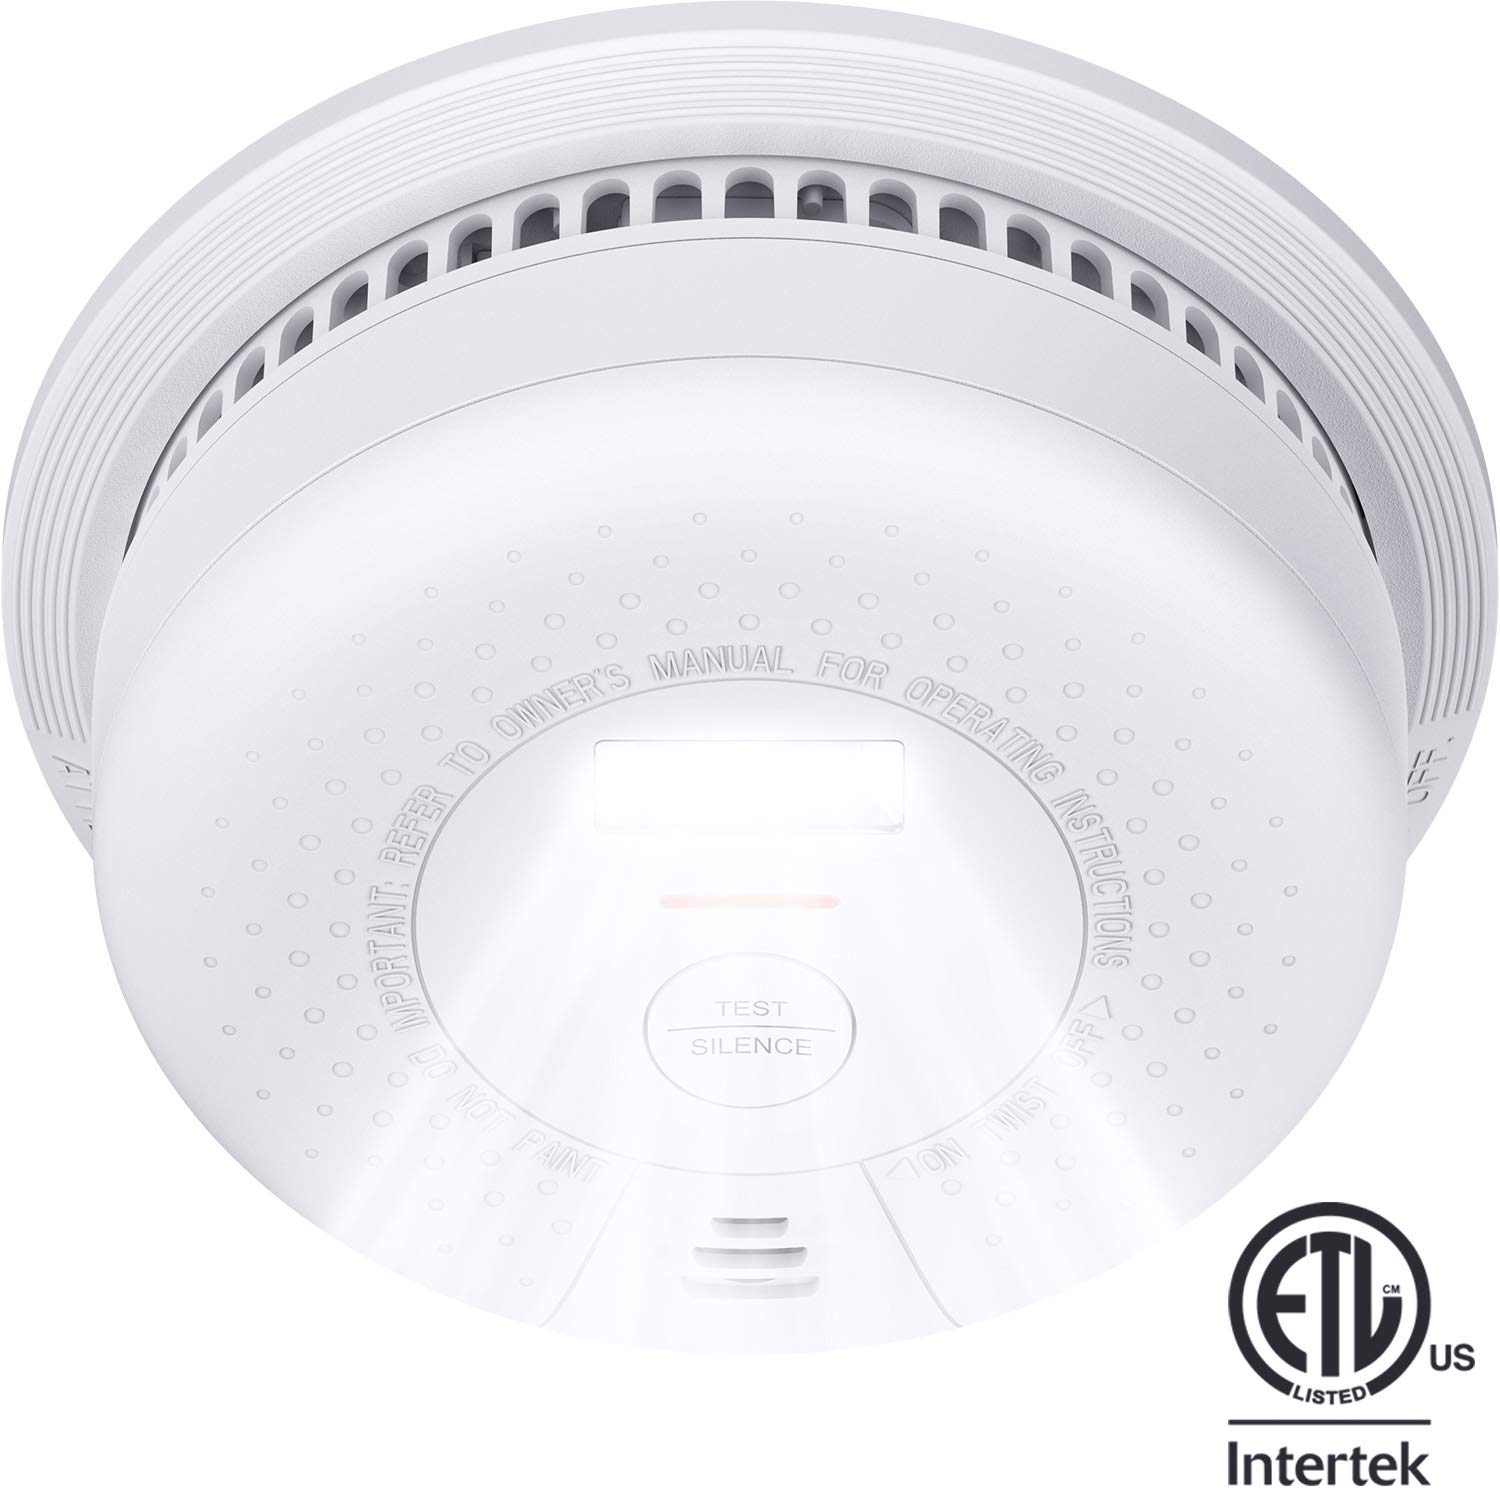 Smoke Detector, X-Sense SD01 10-Year Battery (Not Hardwired) Fire Smoke Alarm with Escape Light, Compliant with UL 217 Standard